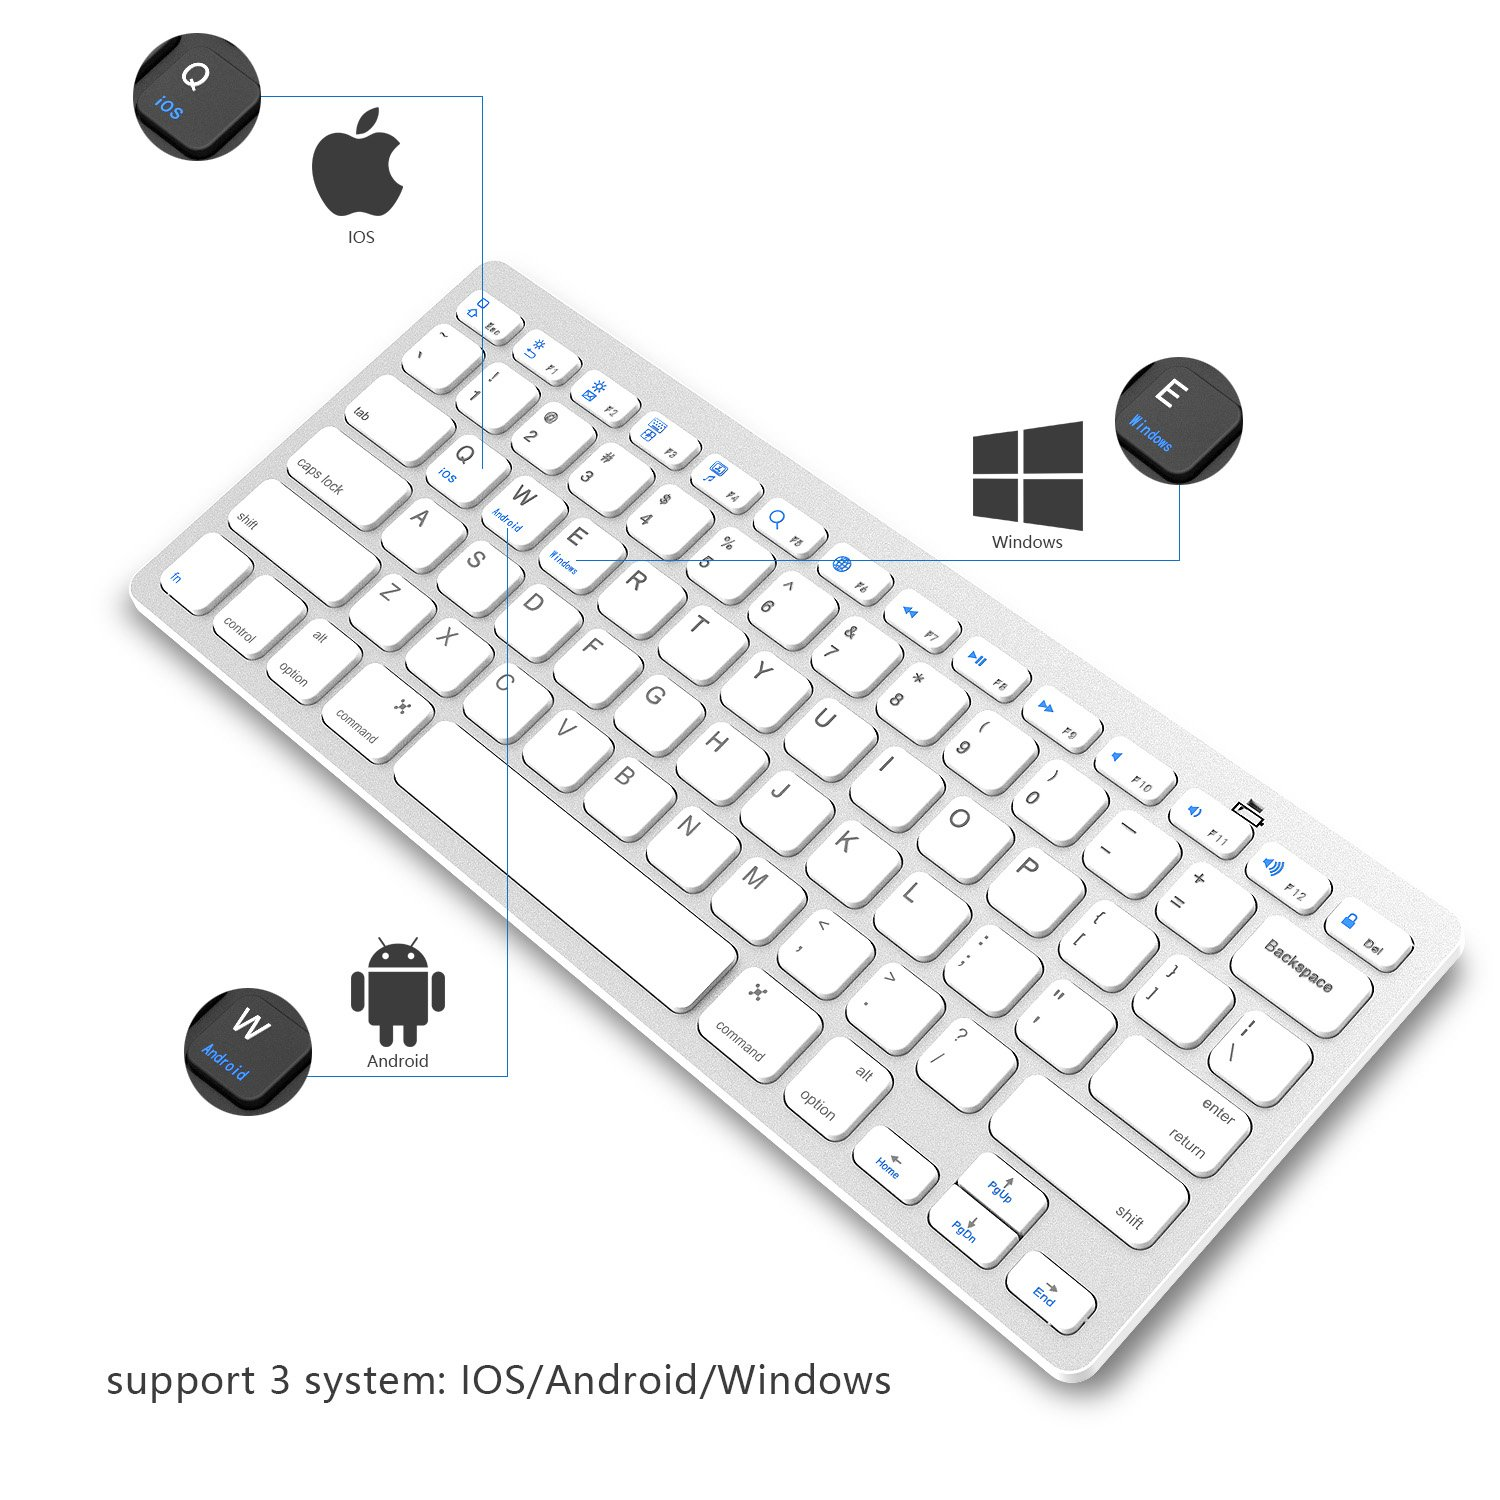 Compatible for iPad pro, iPhone X, SamsungTab, Surface pro and More -Silver Bluetooth Keyboard /— Jelly Comb Compact Bluetooth Keyboard Ultra Slim for iOS Android Windows Mac OS PC Tablet Smartphone